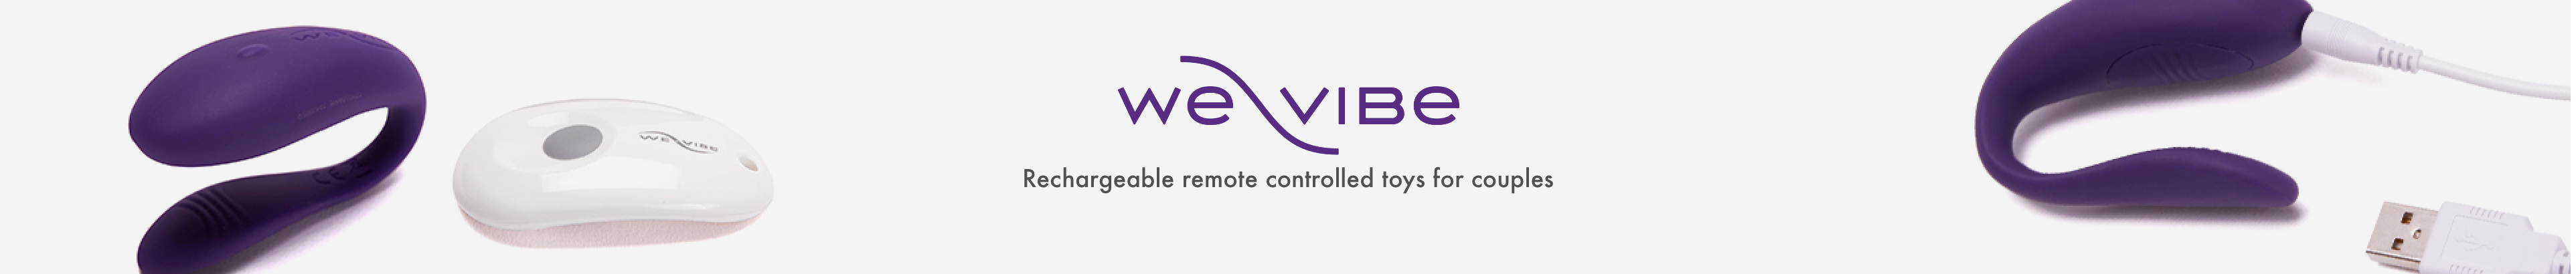 We Vibe - Rechargeable remote control toys for couples